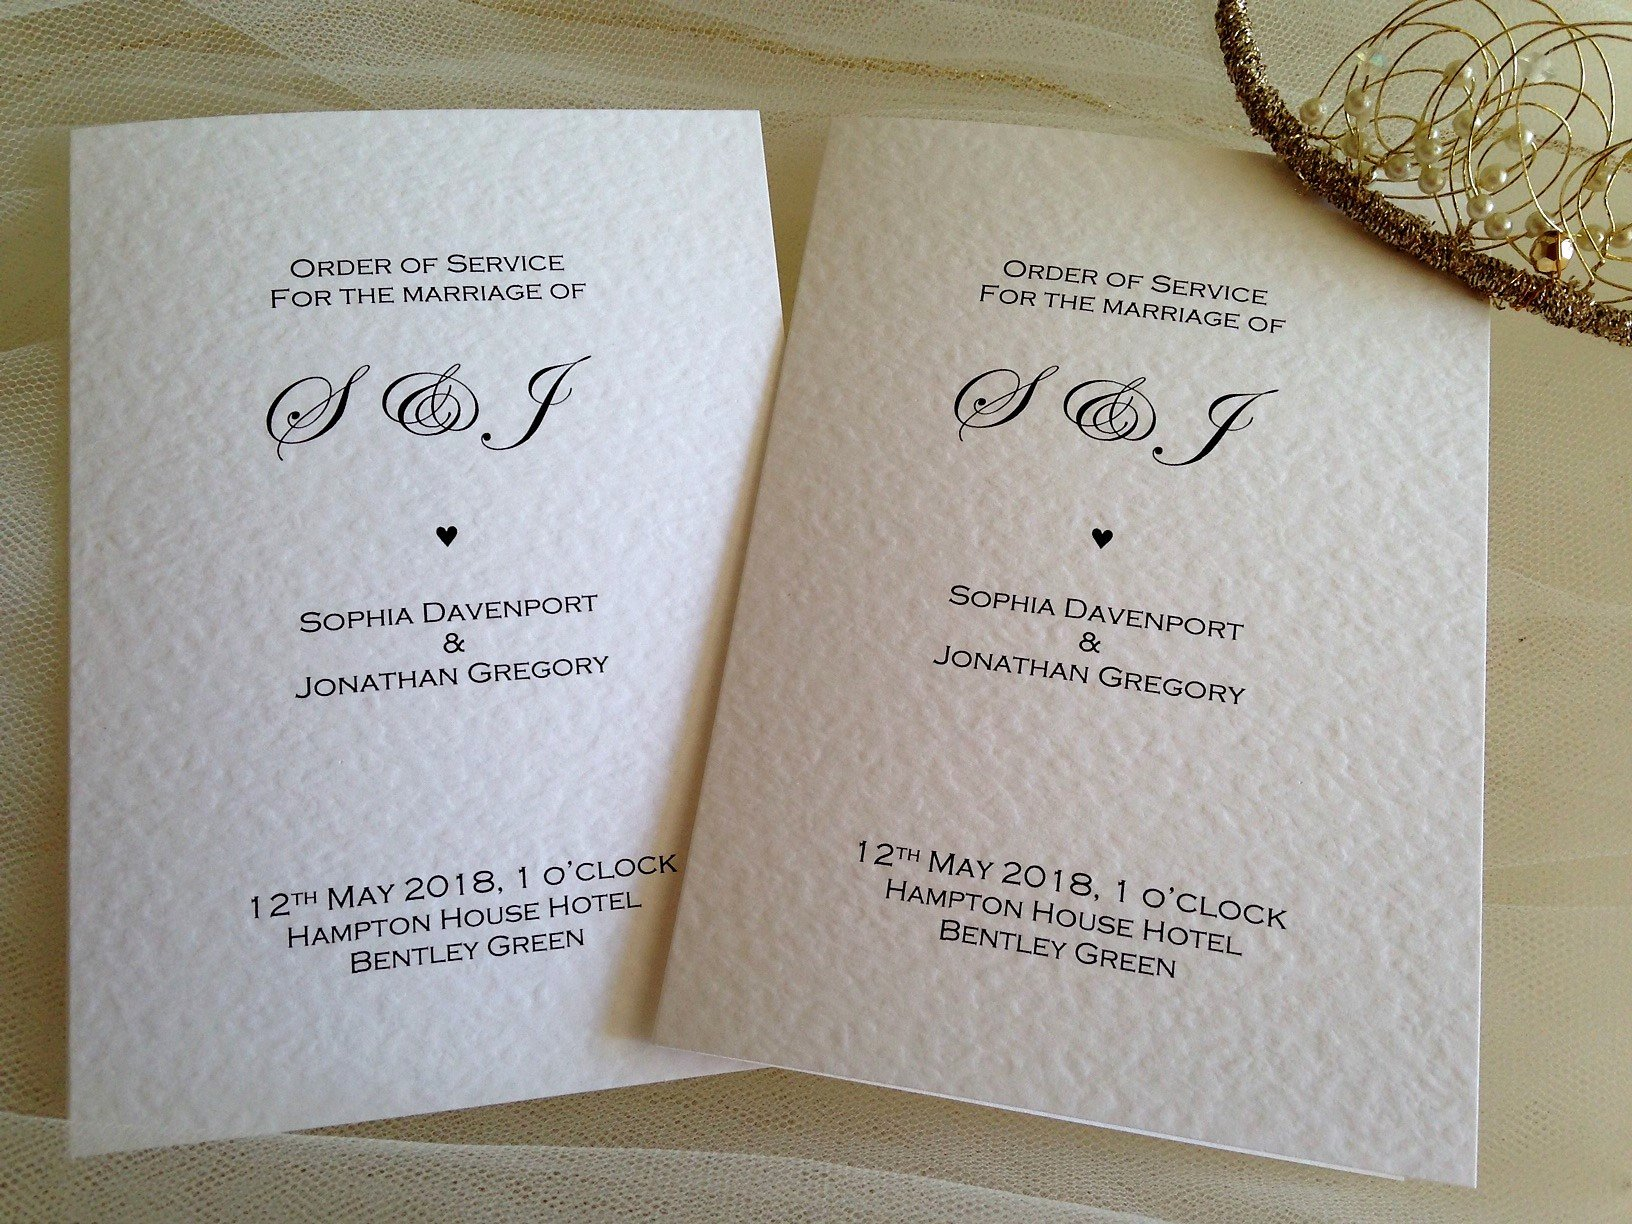 Order Of Service Template Awesome Wedding order Of Service Books